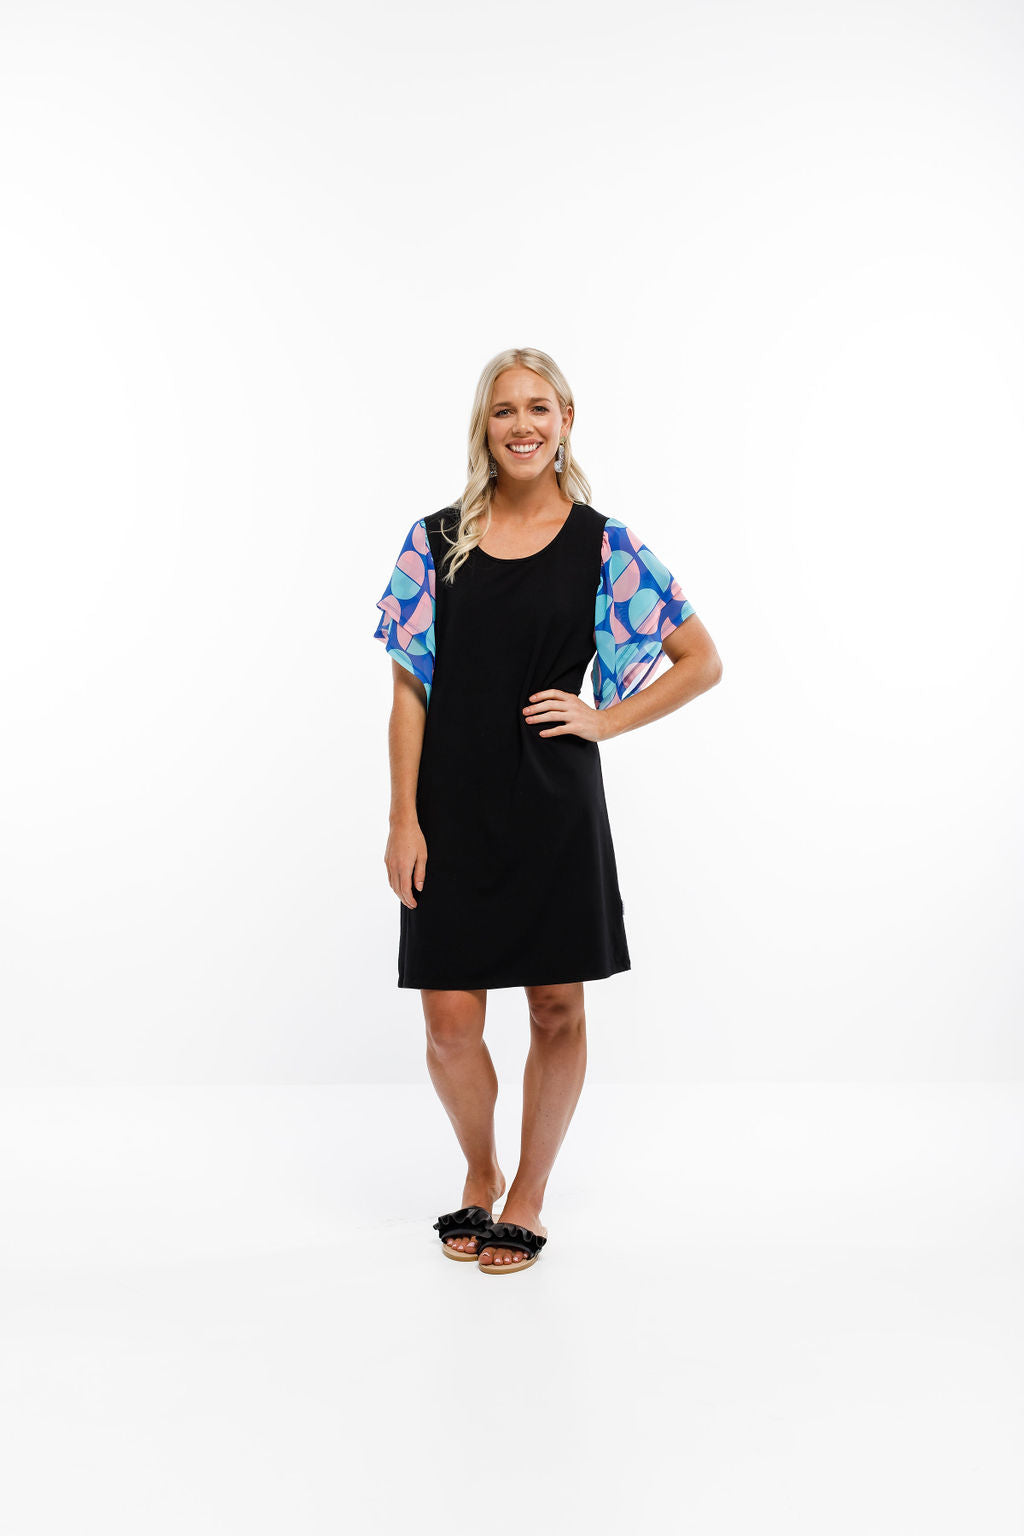 LOLA DRESS - Black with Summer Spot Print Sleeves